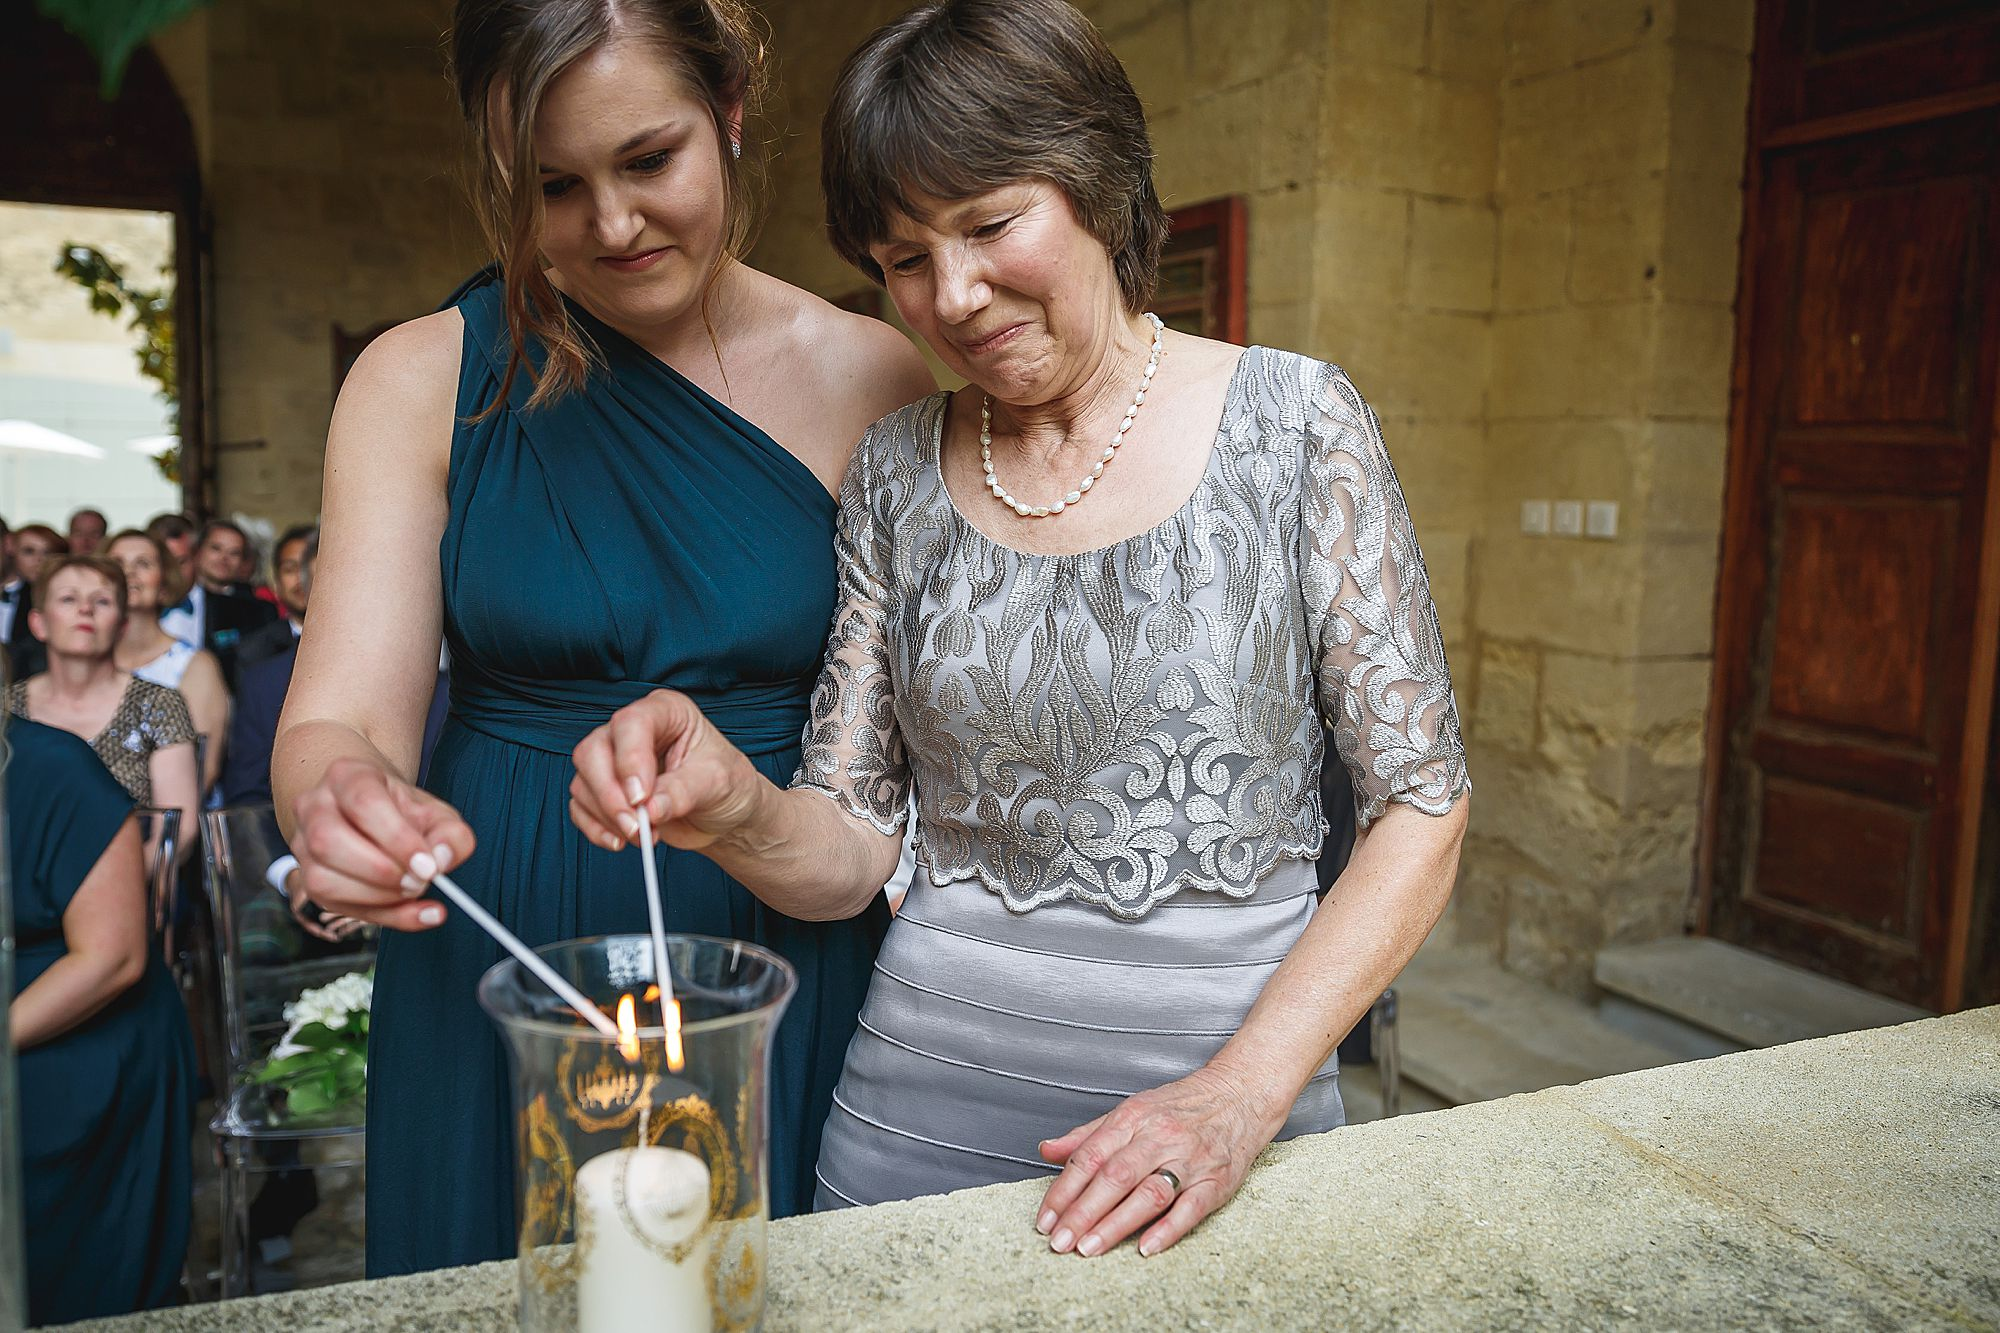 lighting a remembrance candle